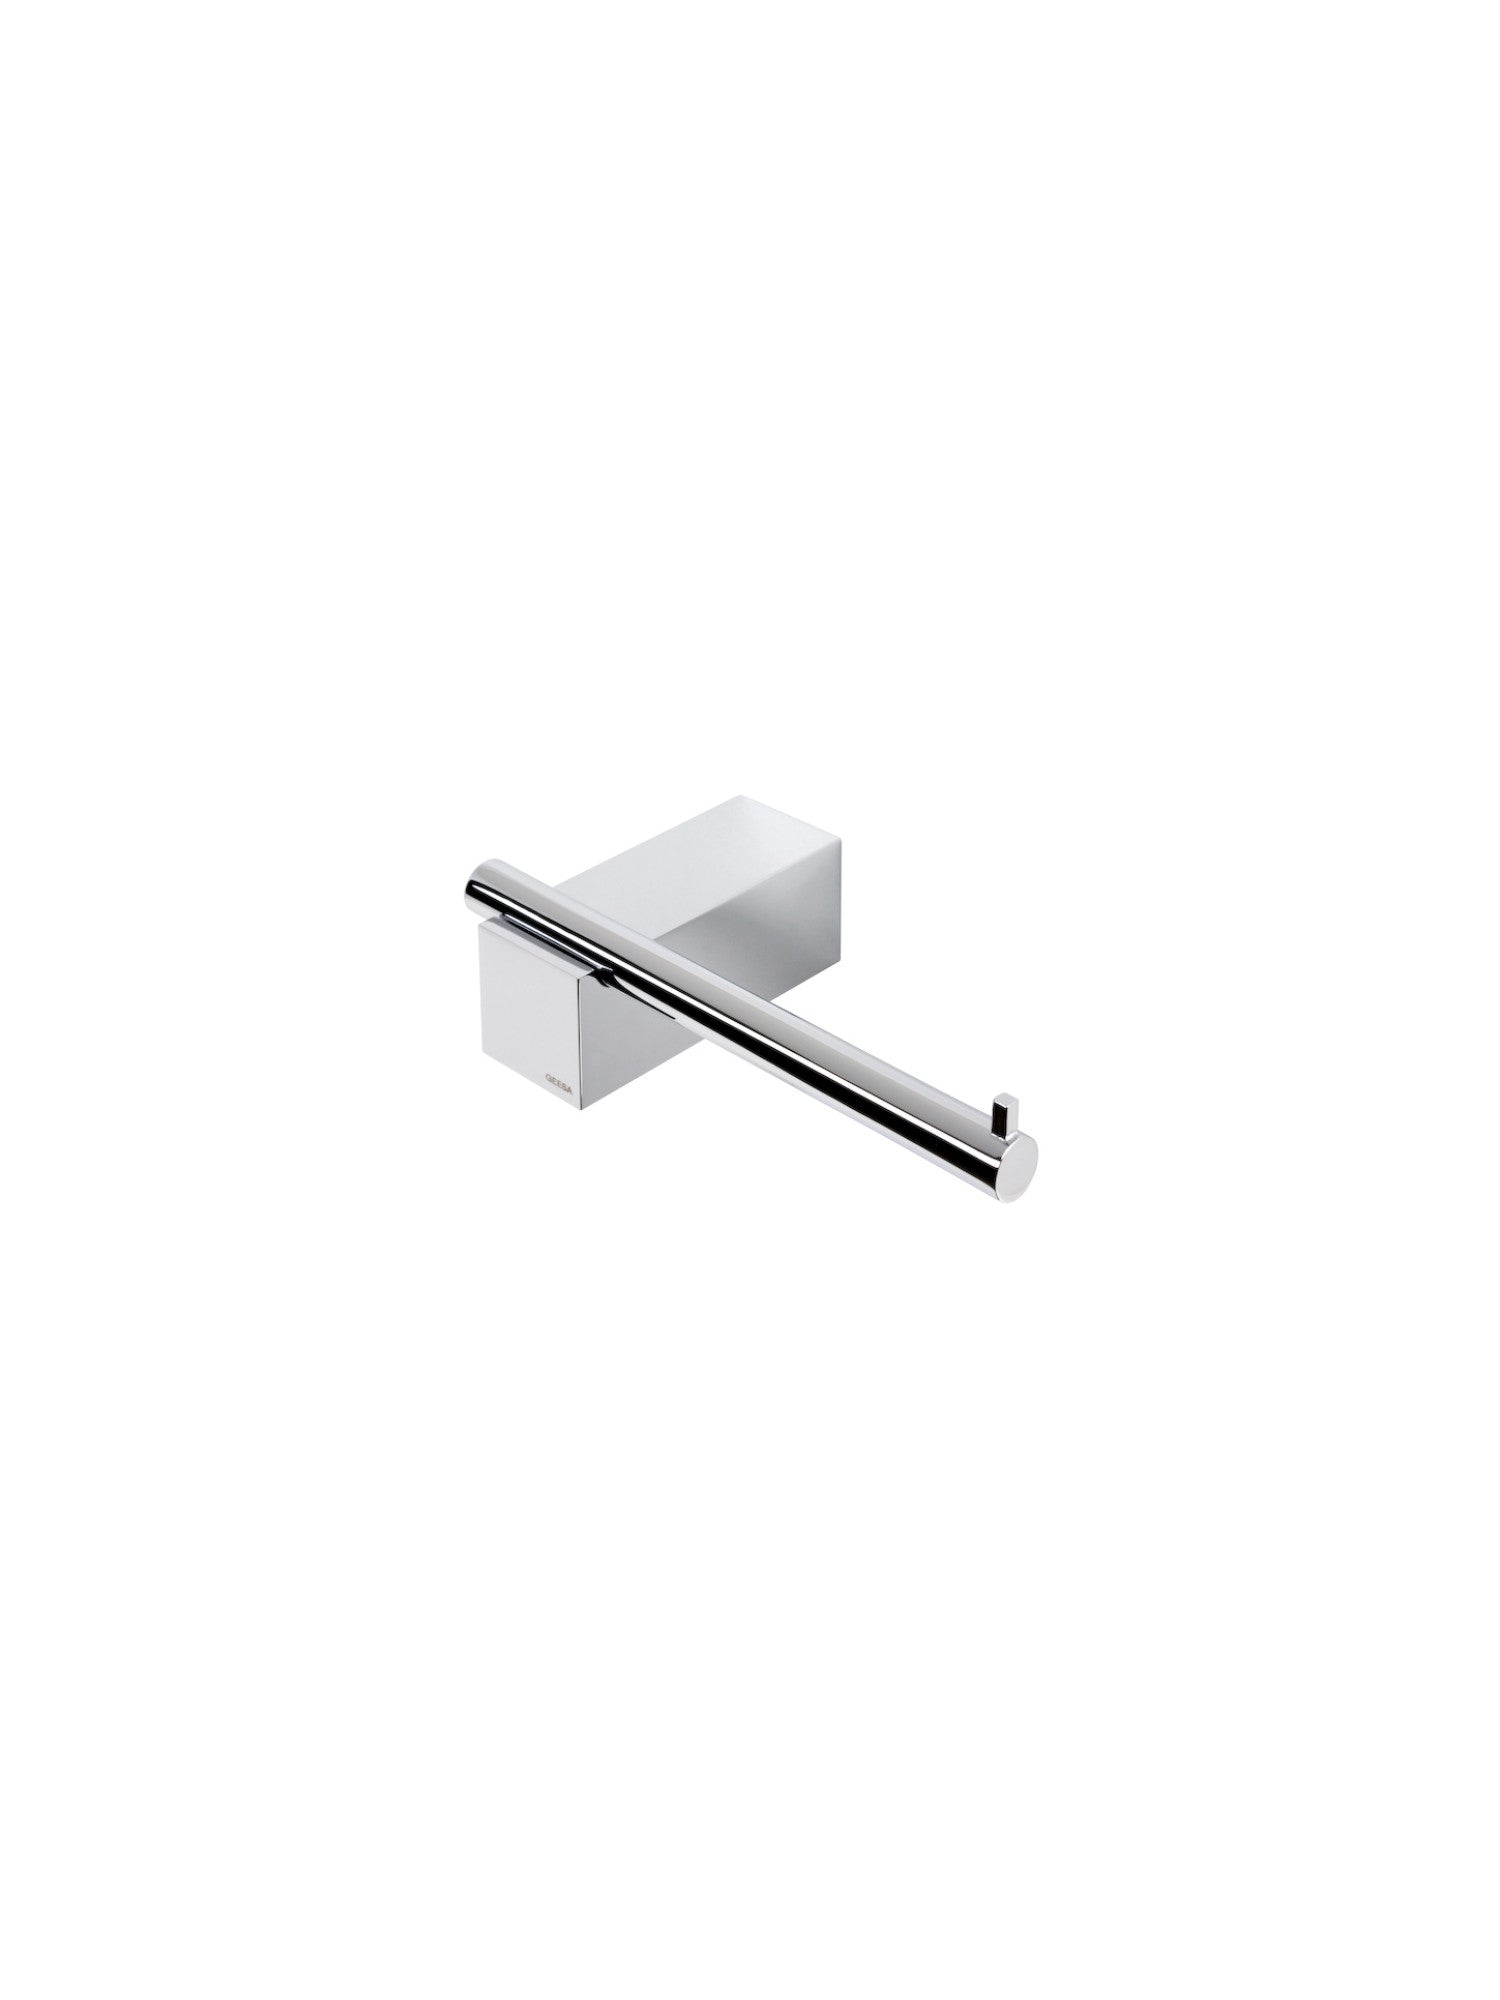 Nexx Toilet Roll Holder #7509-02